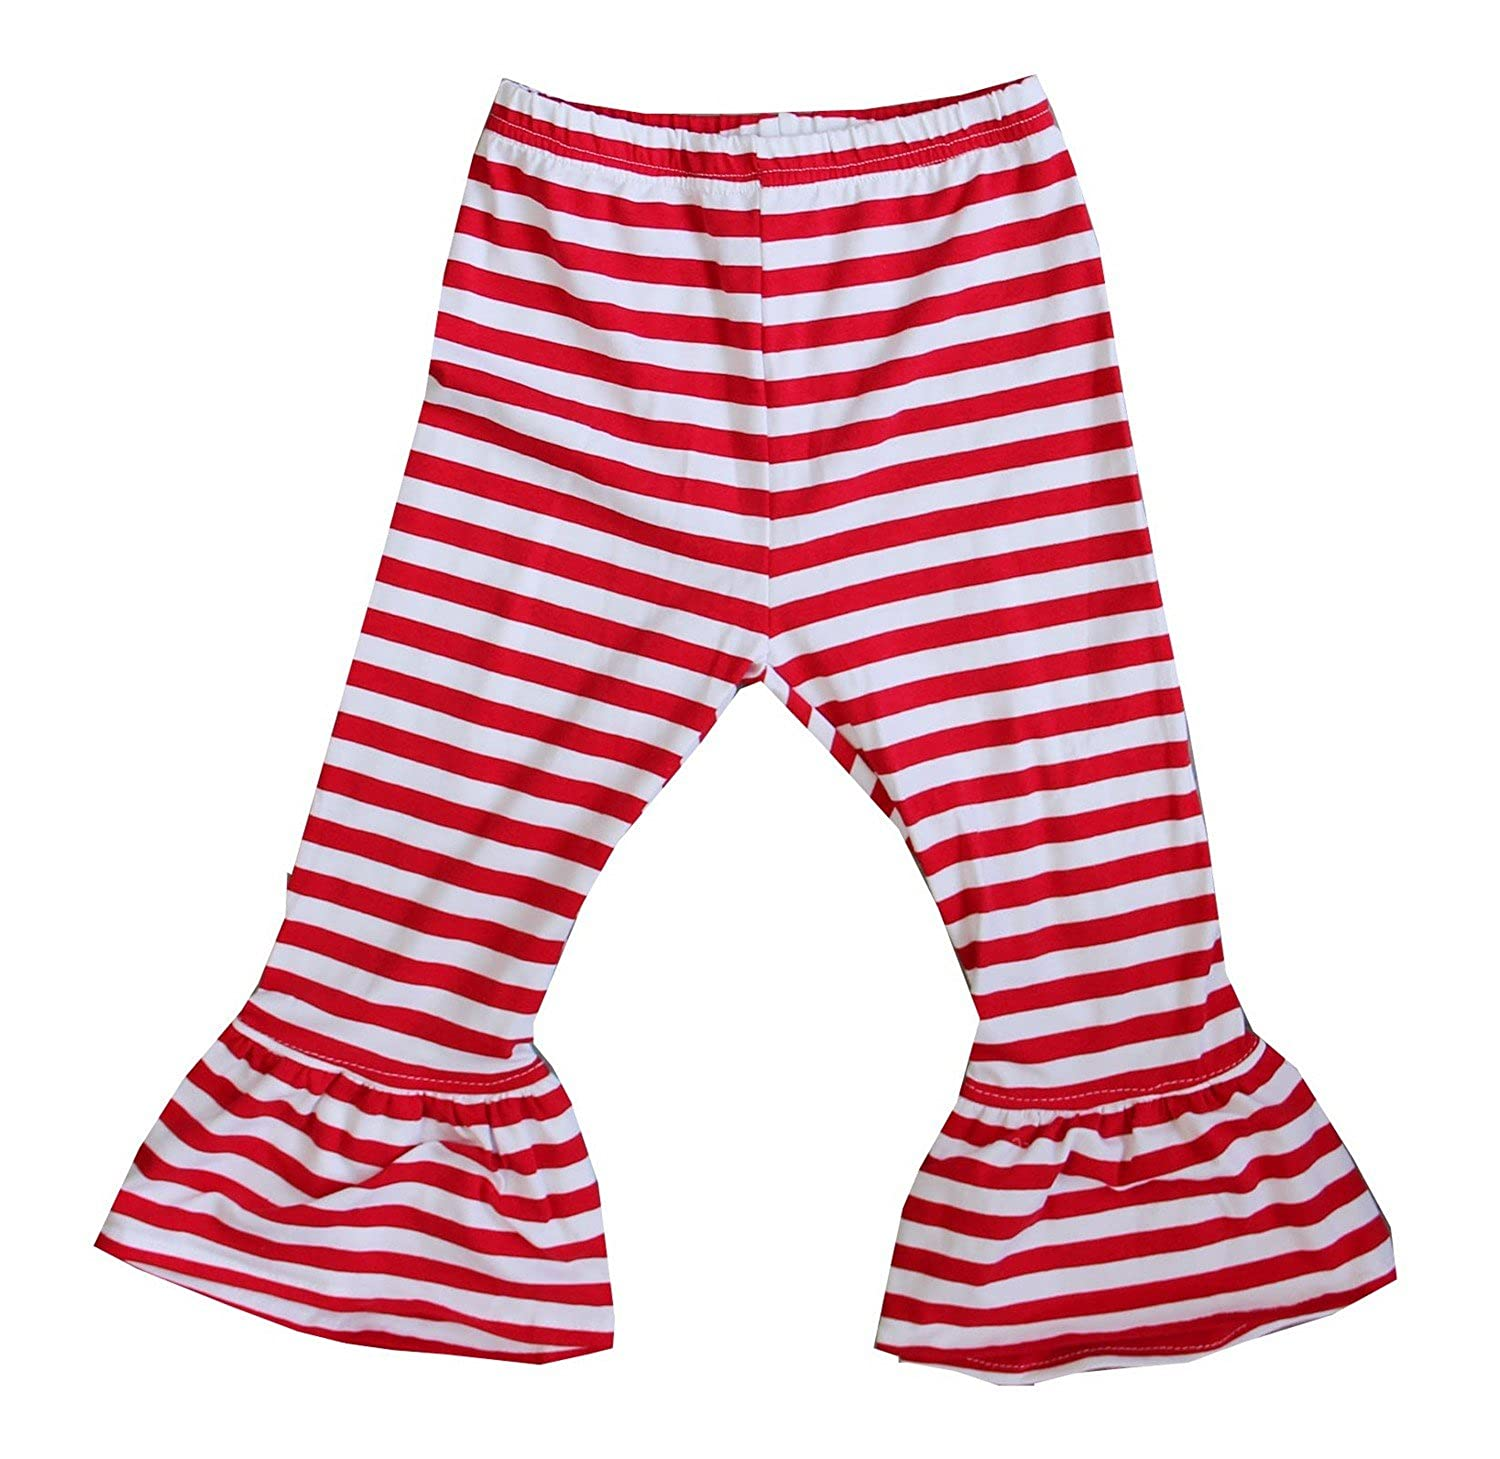 Kirei Sui Baby Xmas Red White Stripes Pants BTS27